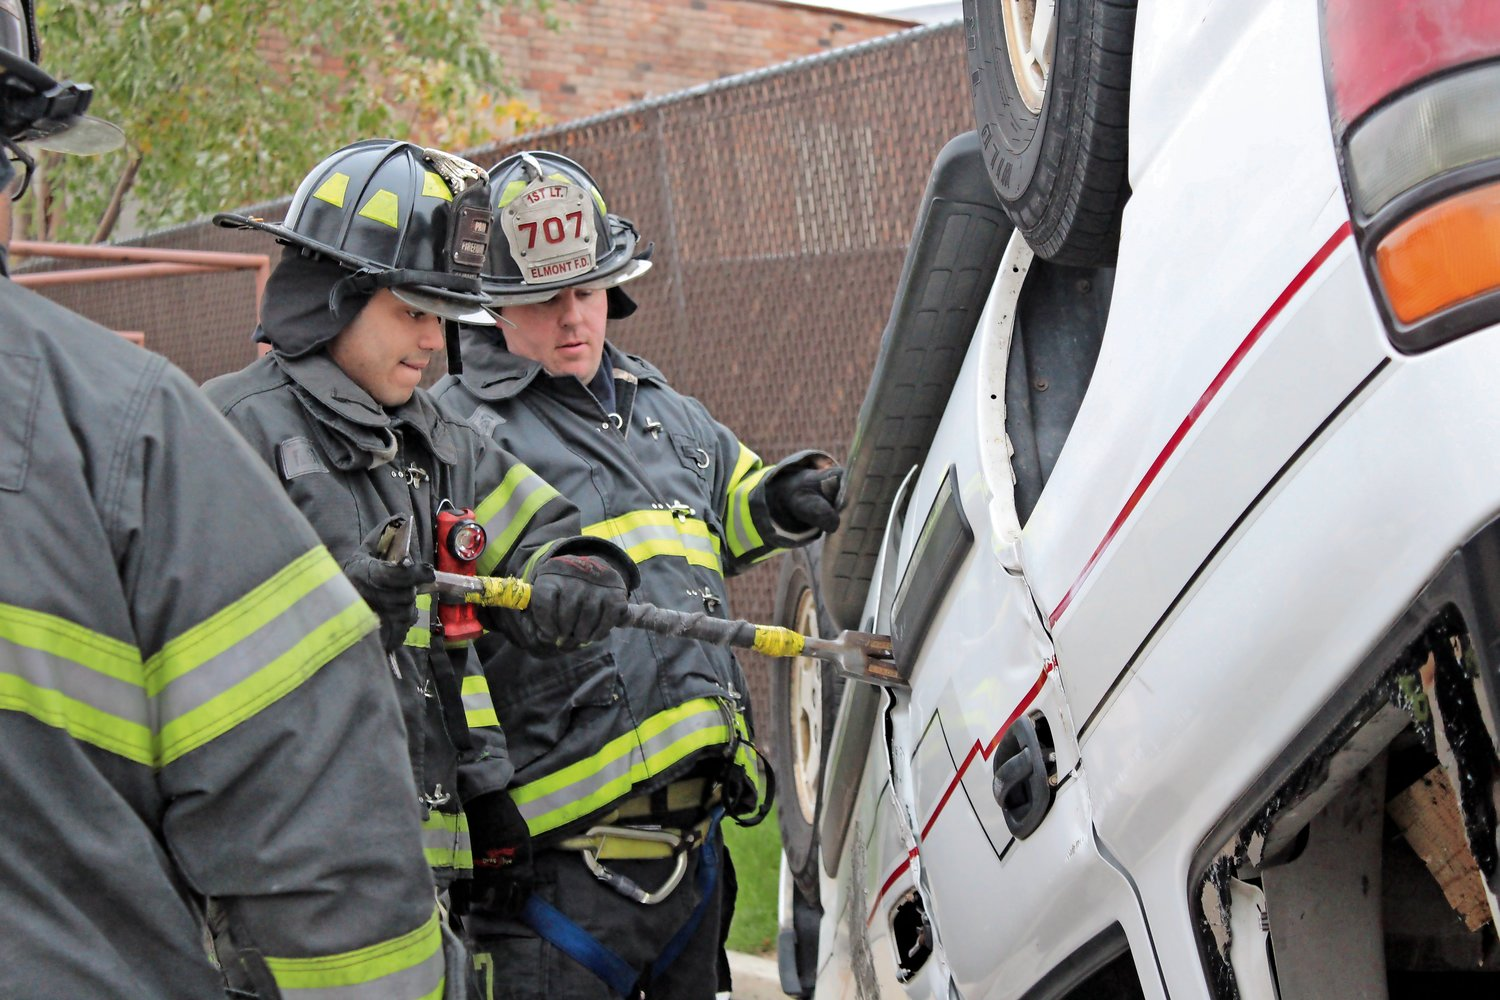 Firefighters Sebastian Pimentel and Patrick McNeill pried open the door of the overturned car.